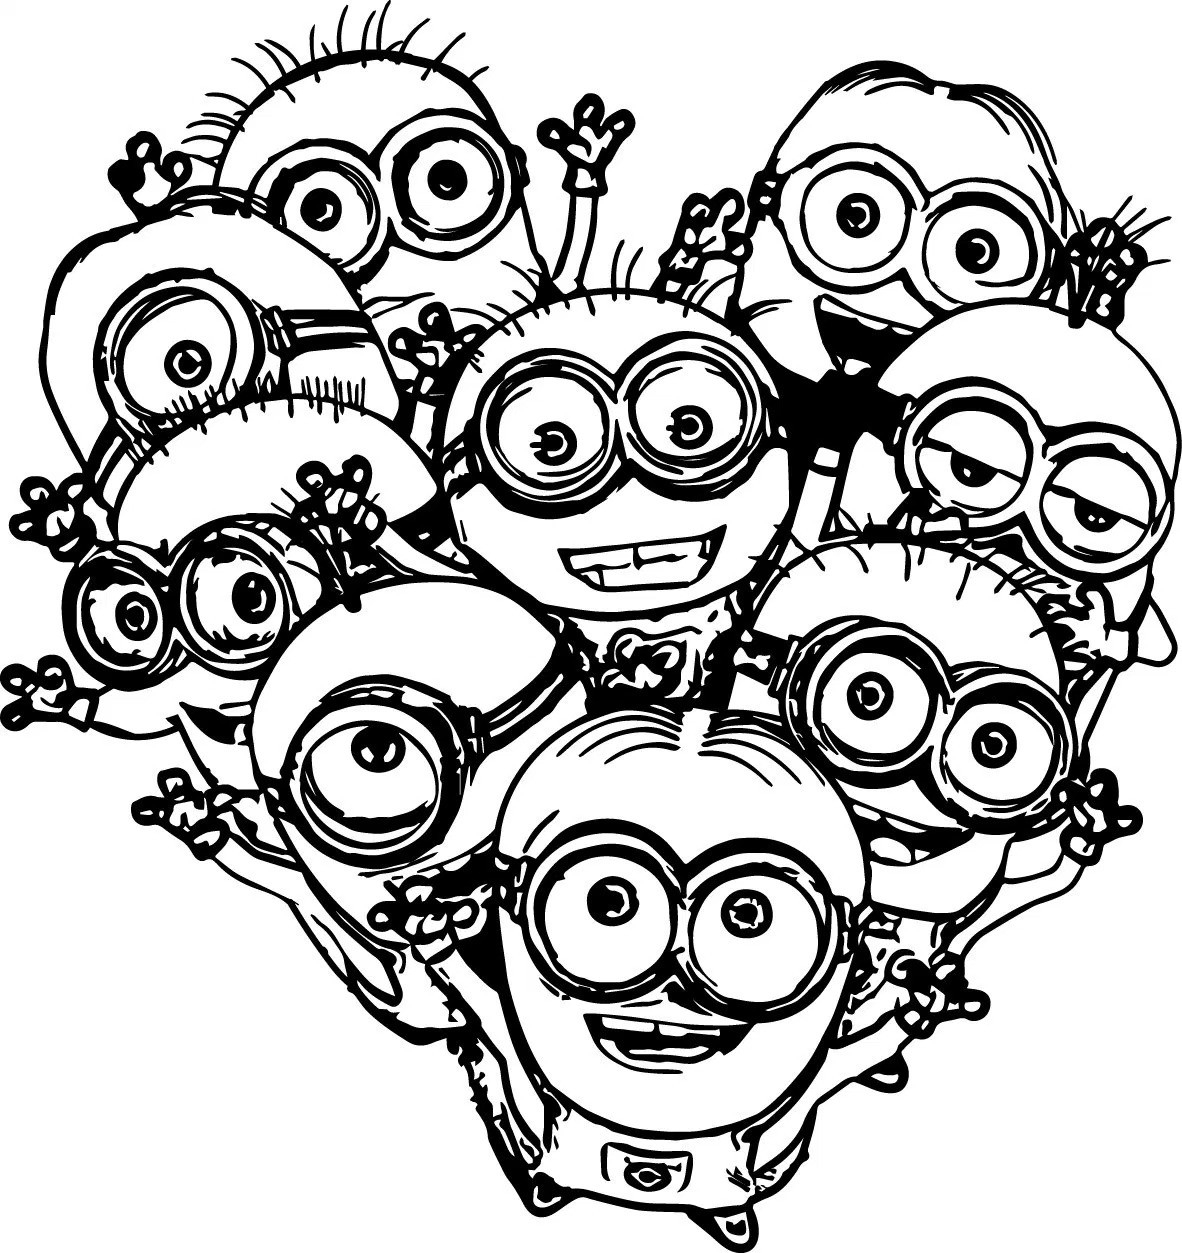 Minions Coloring Pages Batman Minion Coloring Pages Fiscalreform At Minions Plasticulture